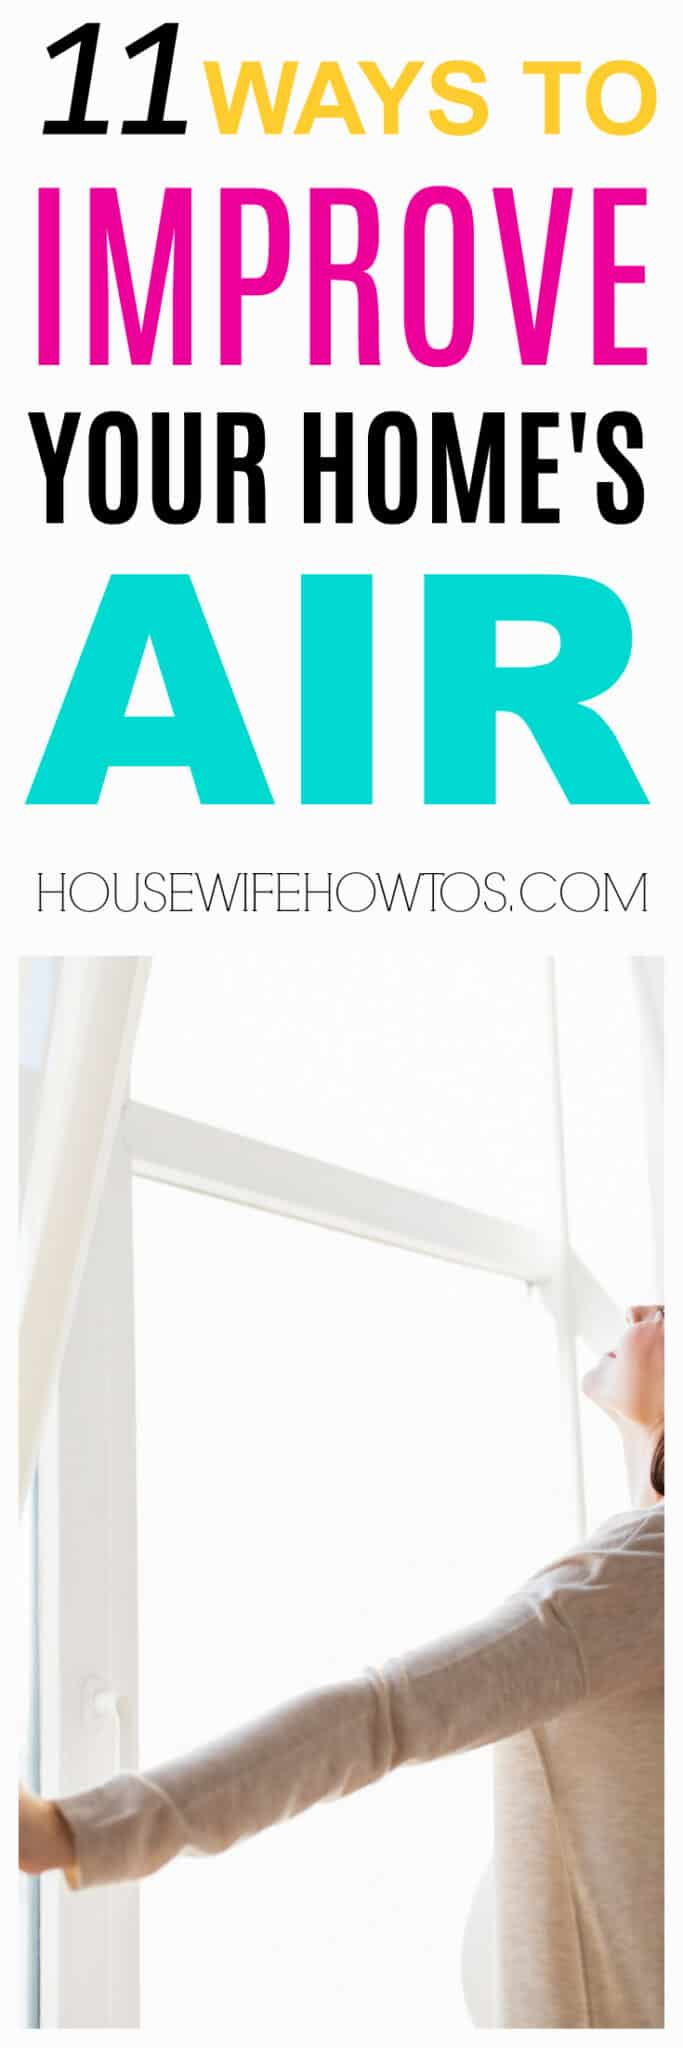 How to Improve Your Home's Air Quality - Protect your family's health AND clean less often with better air #airquality #airpollution #indoorair #indoorairquality #indoorpollution #contaminants #VOCs #dust #allergies